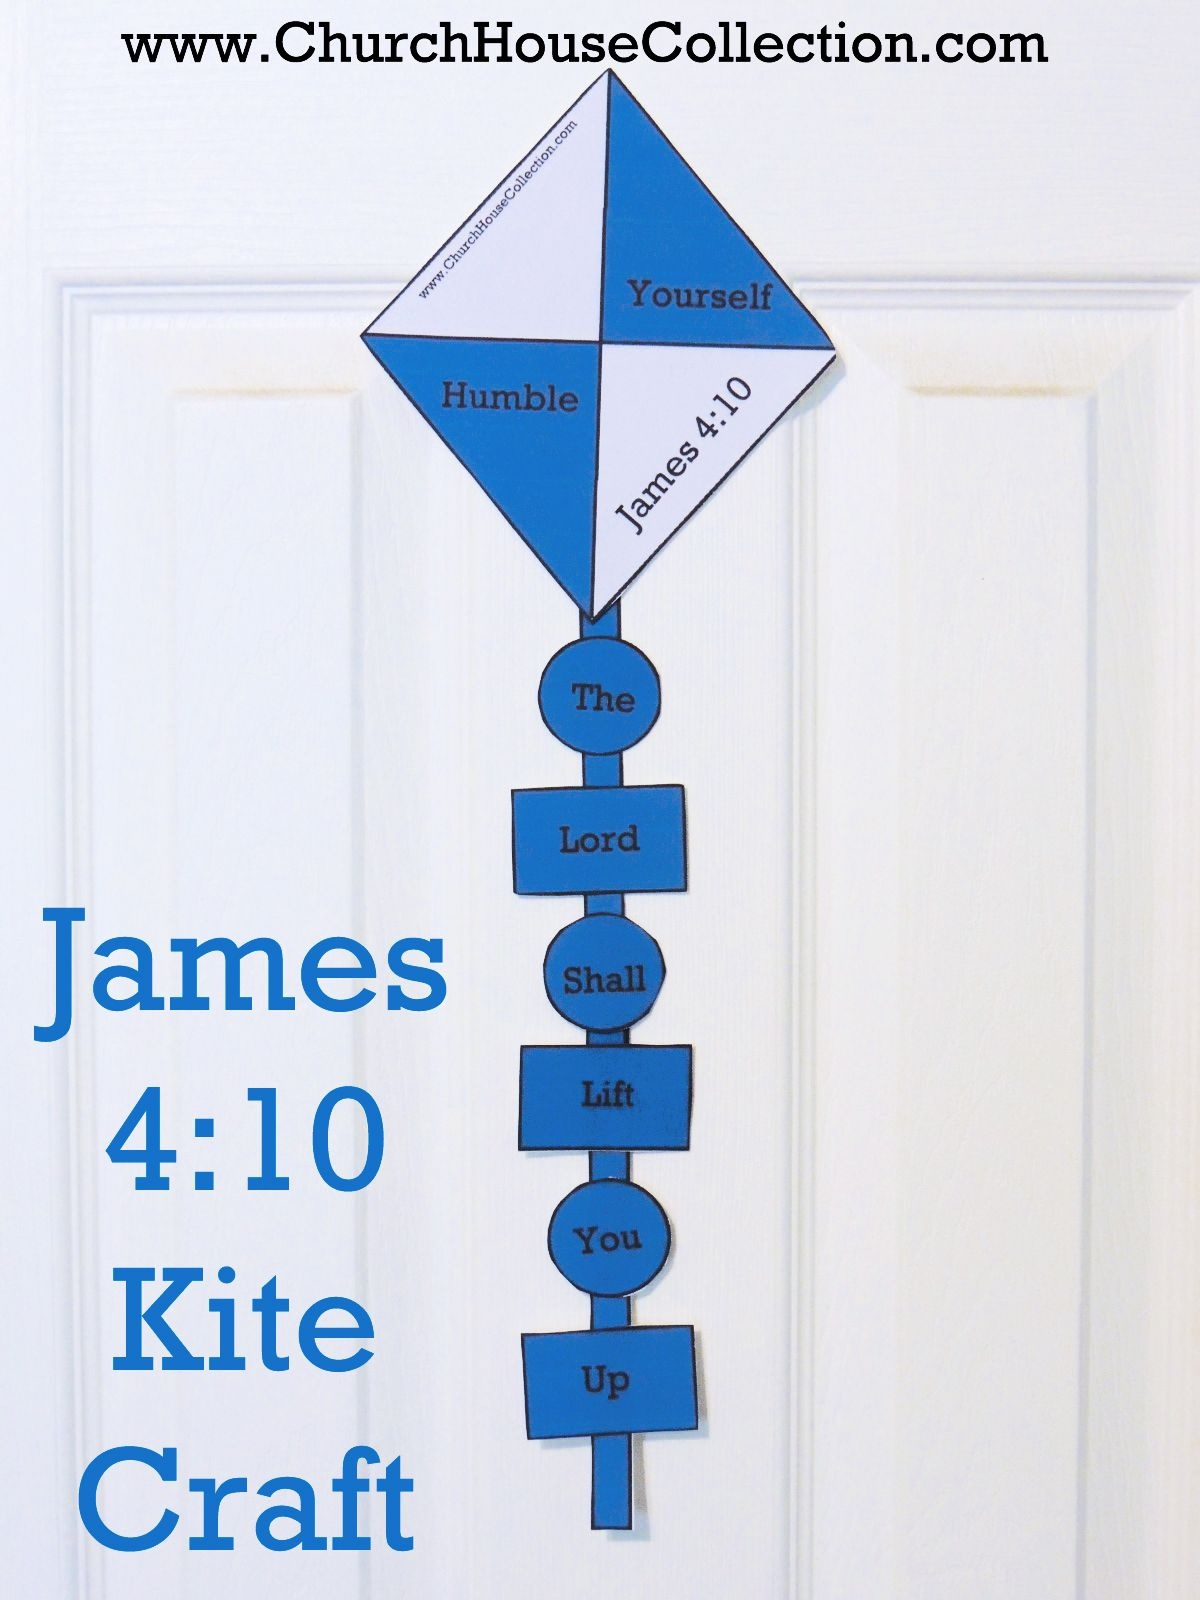 Kite Cutout Craft For Sunday School Kids James 4:10- Free Printable - Free Printable Sunday School Crafts